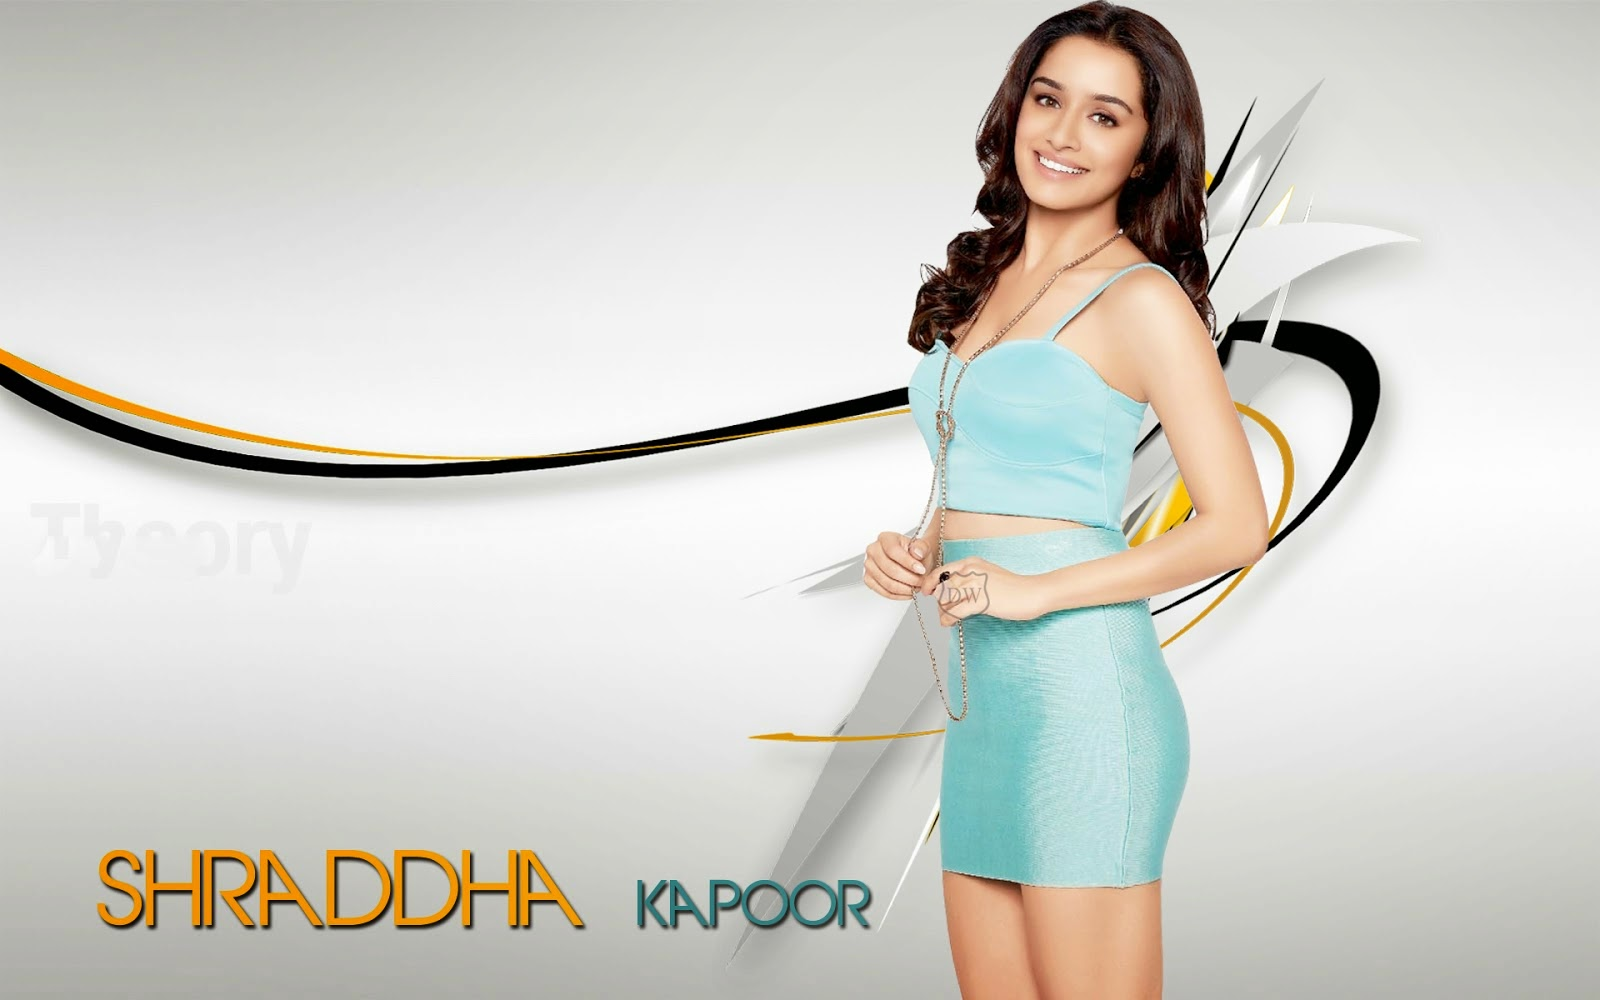 Shraddha Kapoor Hot Images Bikini Wallpapers Kiss Photos -7980